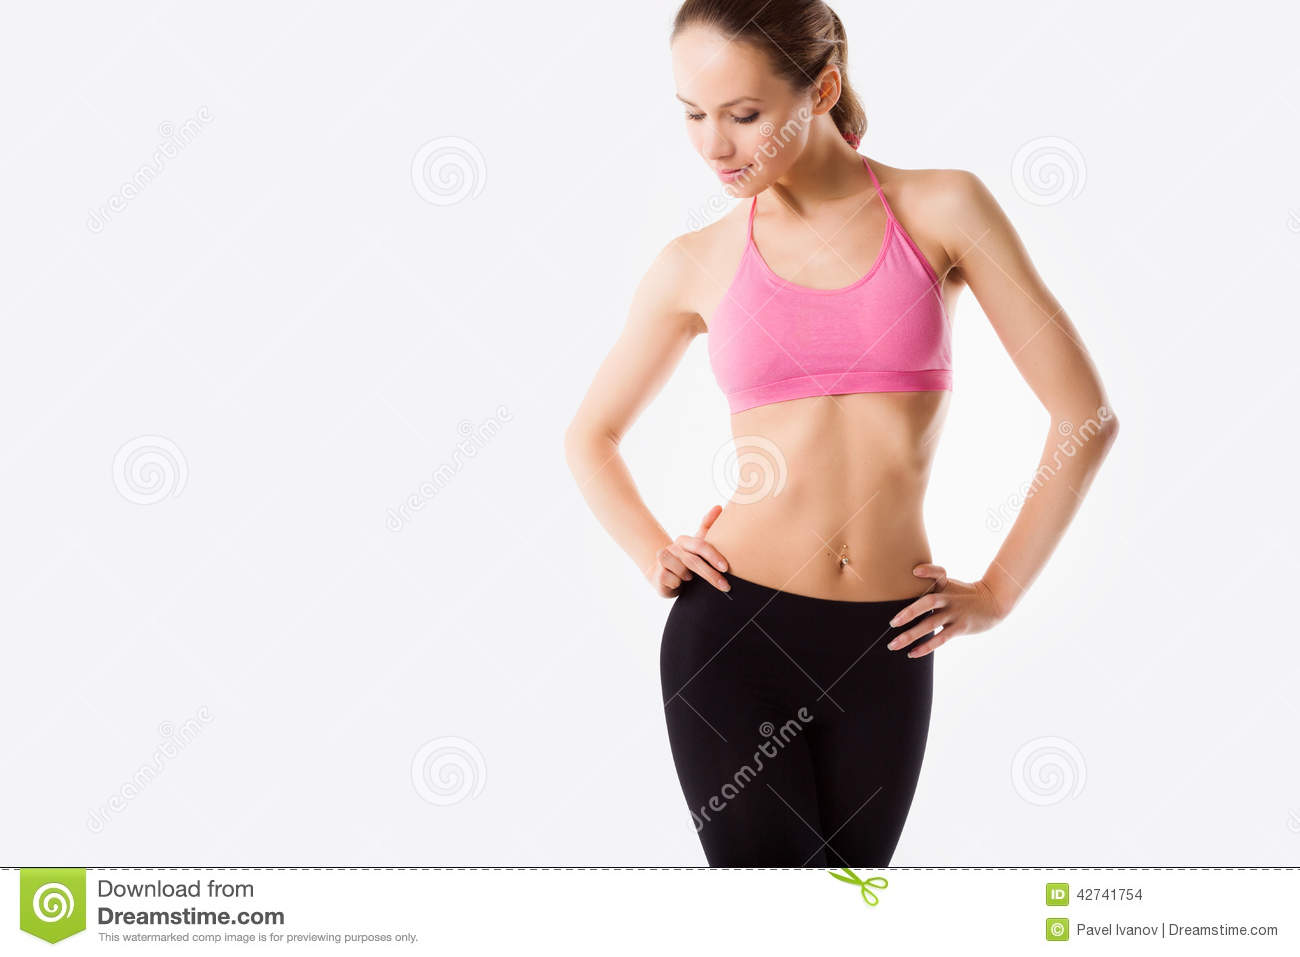 e36cb26e5327c Young Beautiful Woman Posing In A Gym Outfit. Stock Photo - Image of ...